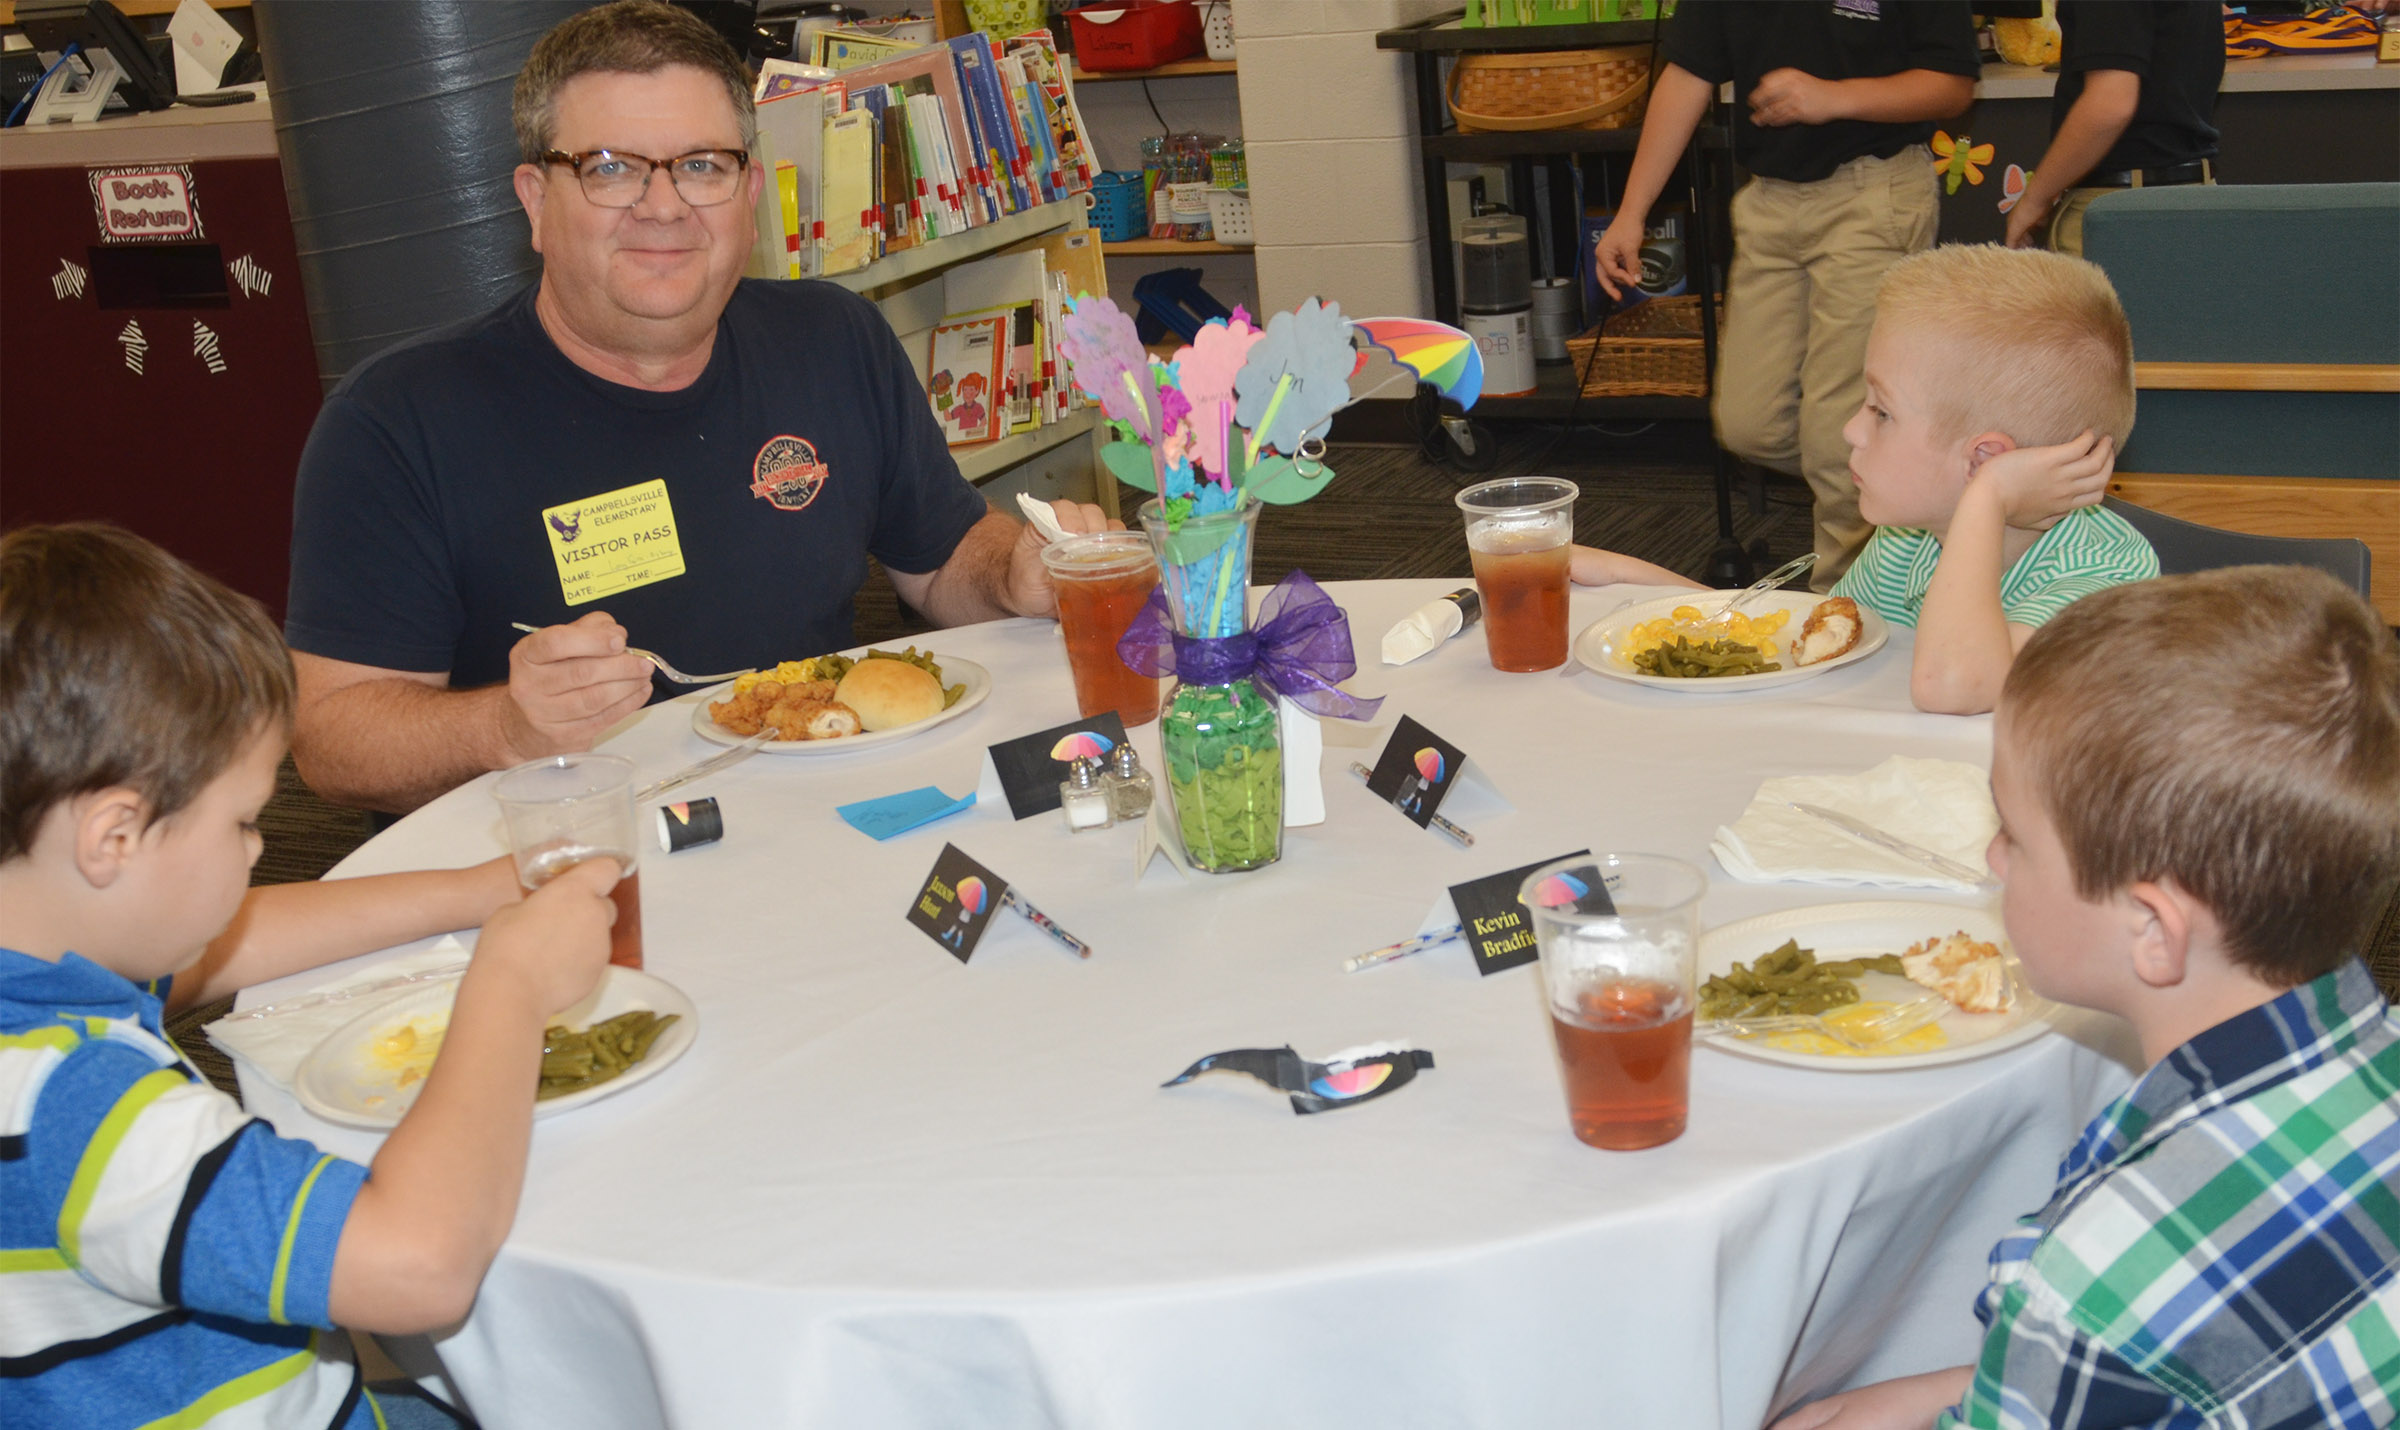 WLVC Operations Manager Larry Smith has lunch with, from left, CES first-grader Jaxson Hunt, second-grader Evan Cundiff and first-grader Kevin Bradfield.